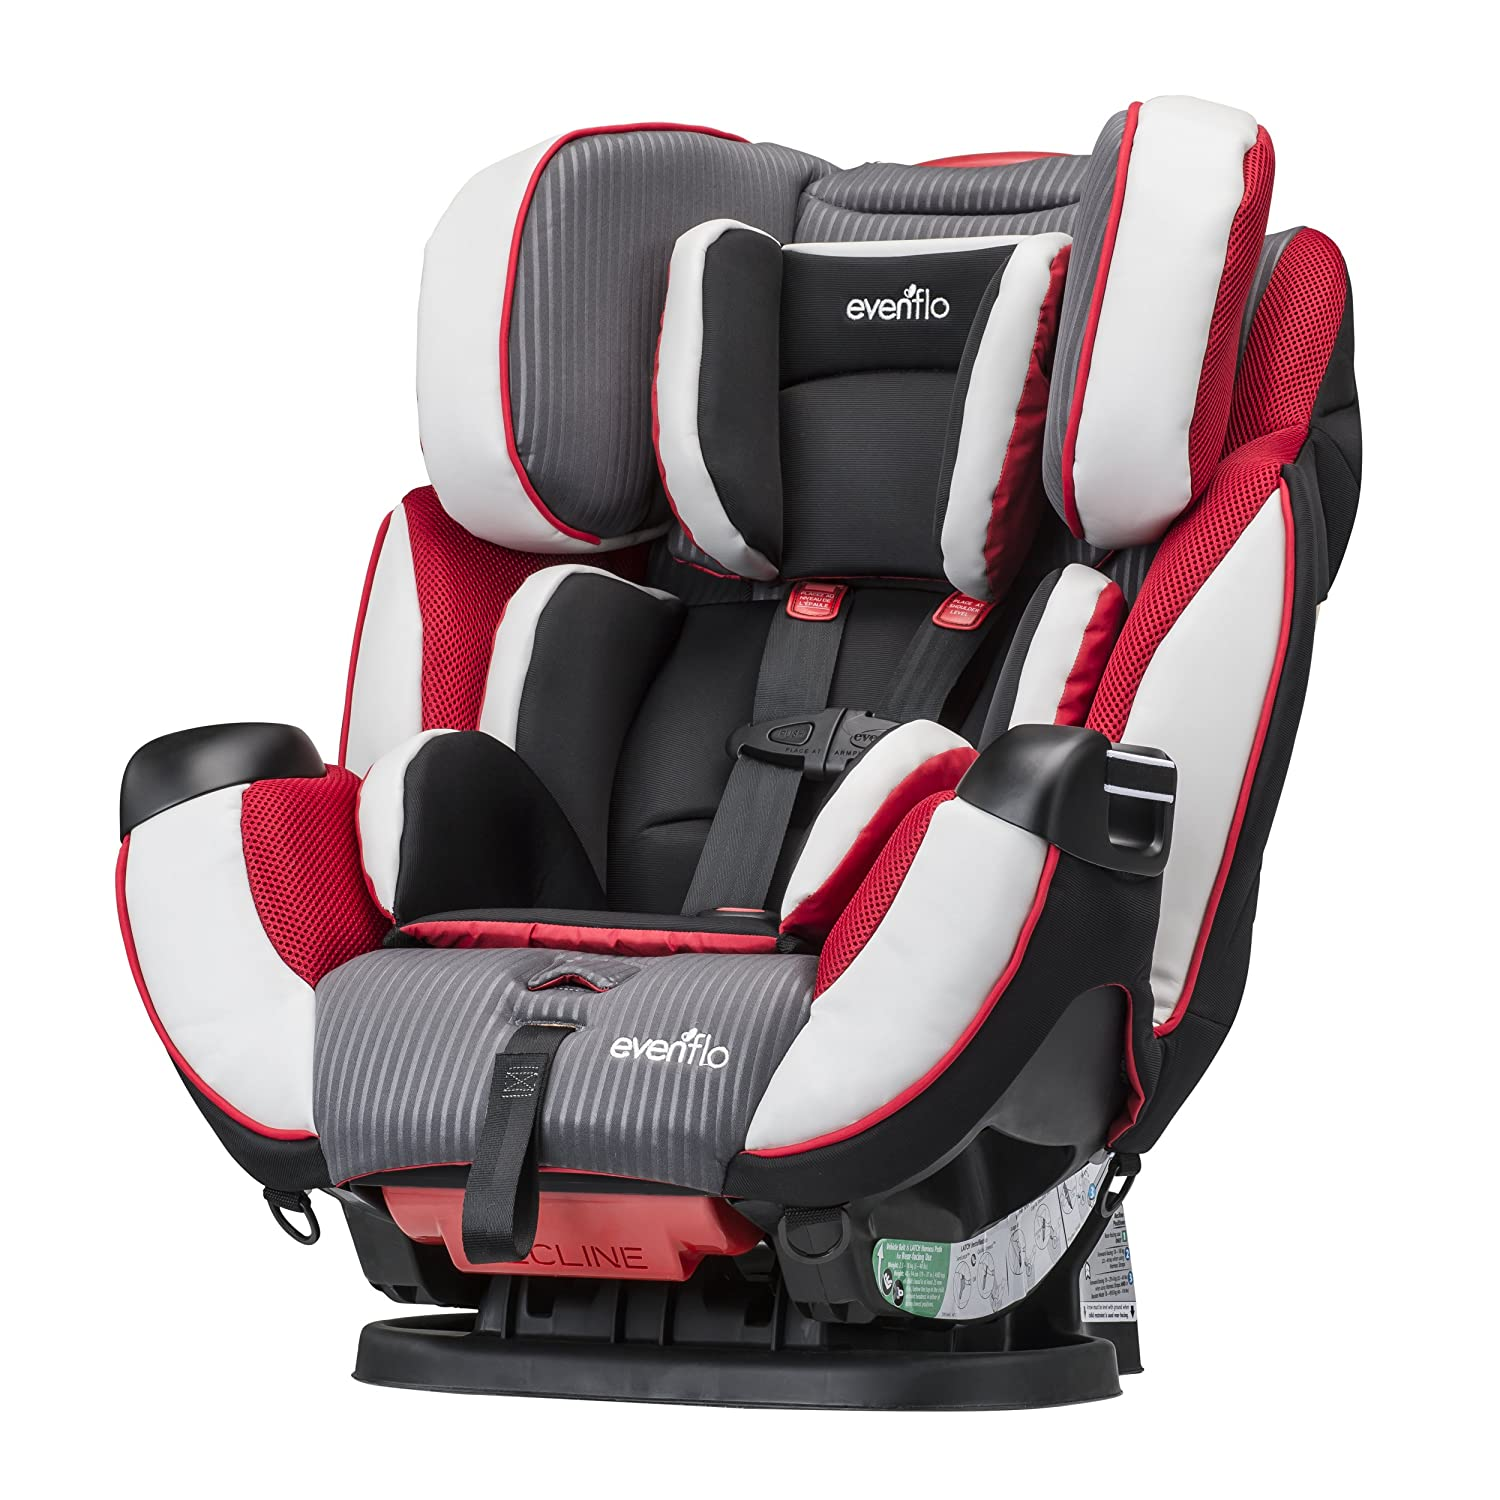 Amazon.com  Evenflo Symphony Elite All-In-One Convertible Car Seat Ocala  Baby  sc 1 st  Amazon.com : evenflo reclining car seat - islam-shia.org